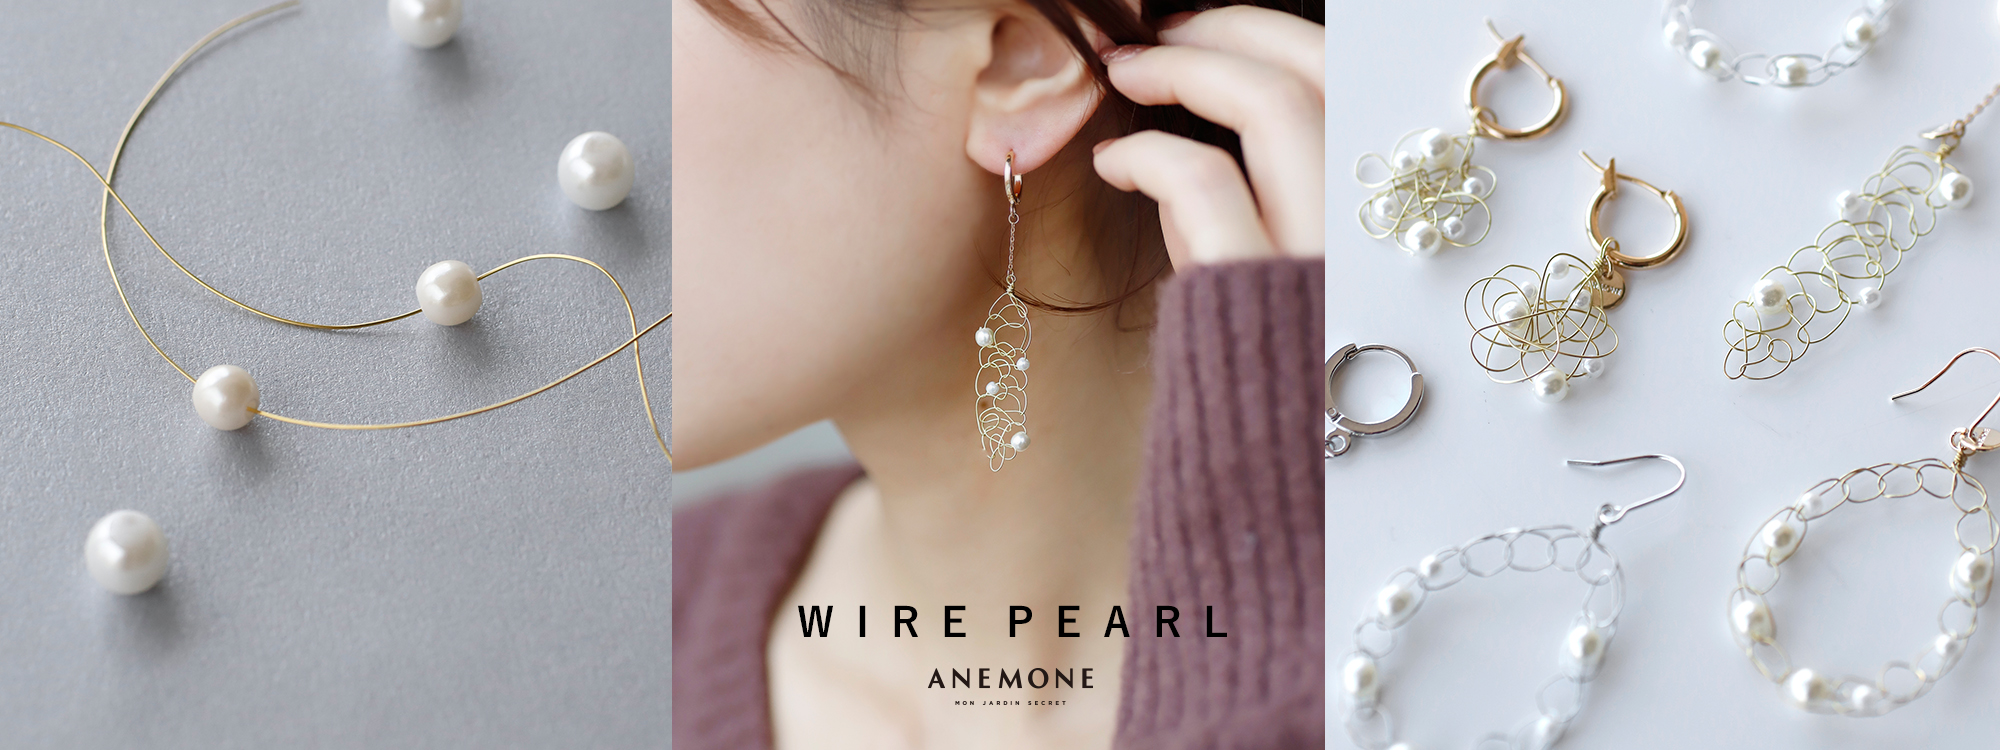 wirepearl